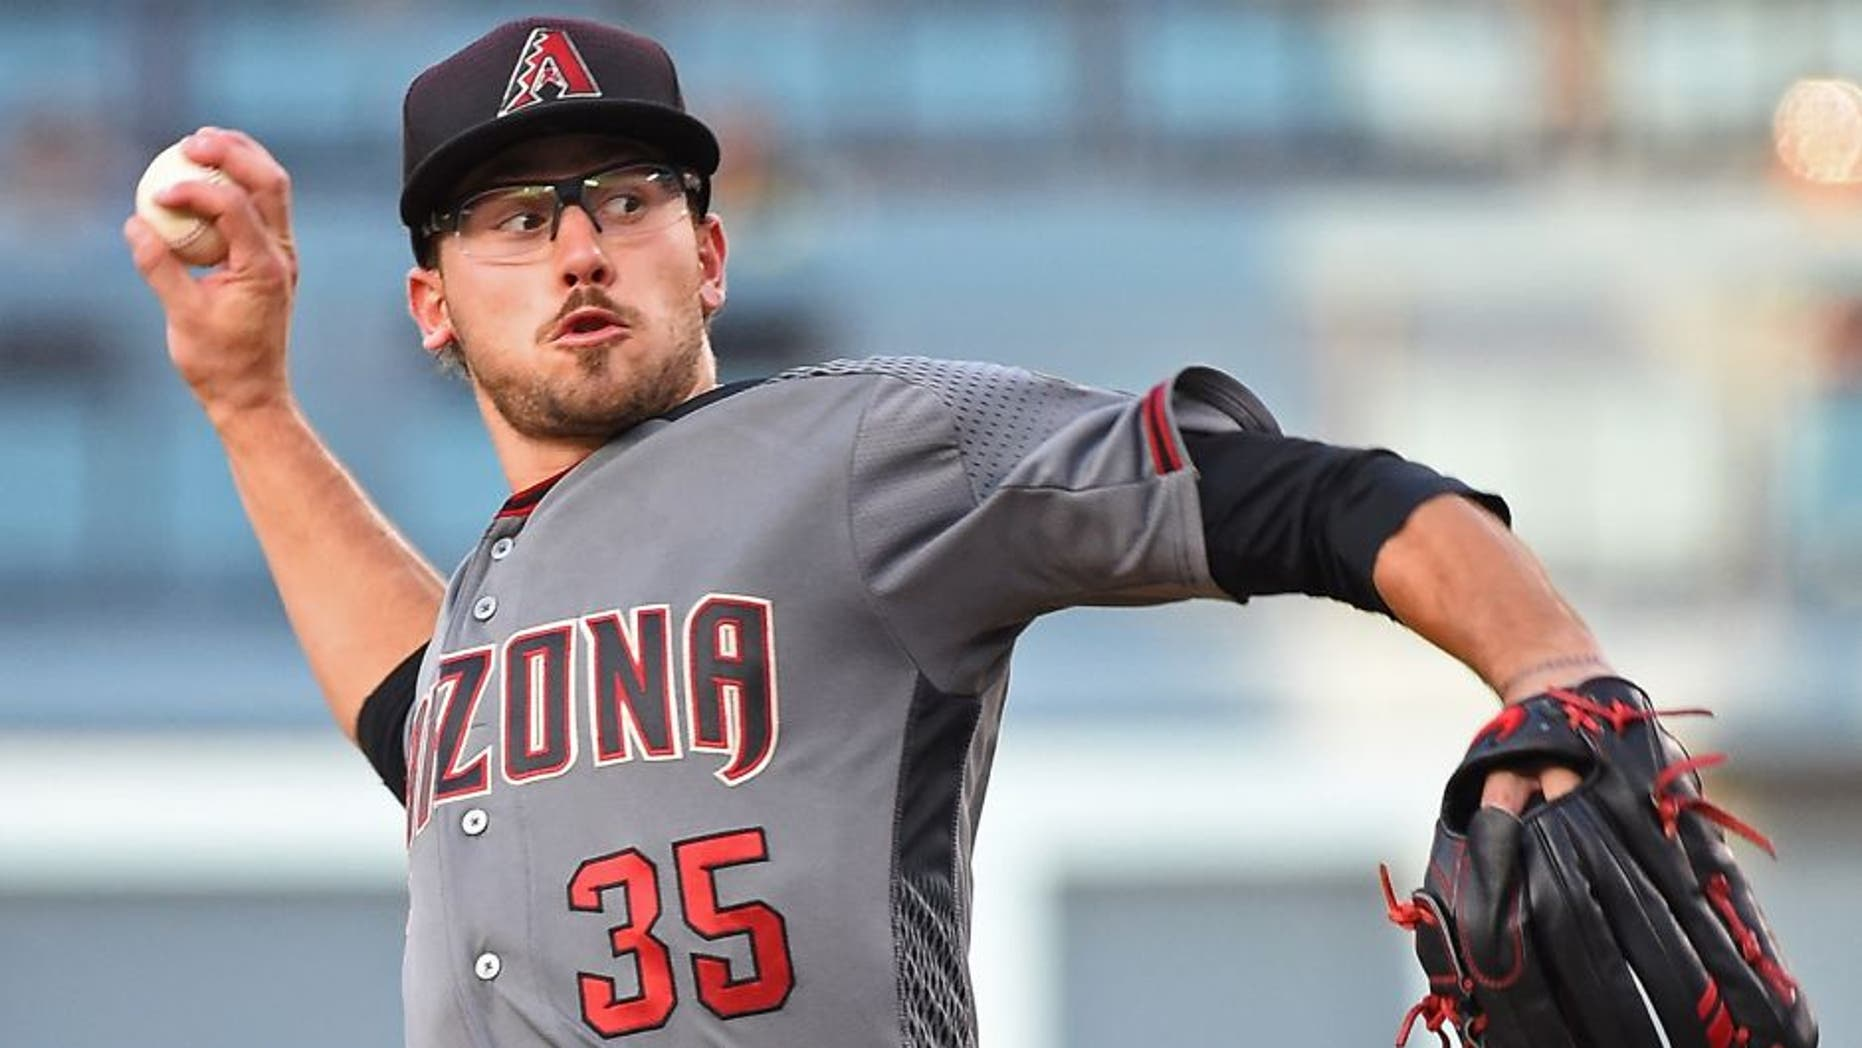 LOS ANGELES, CA - JULY 30: Braden Shipley #35 of the Arizona Diamondbacks in the second inning of the game against the Los Angeles Dodgers at Dodger Stadium on July 30, 2016 in Los Angeles, California. (Photo by Jayne Kamin-Oncea/Getty Images)